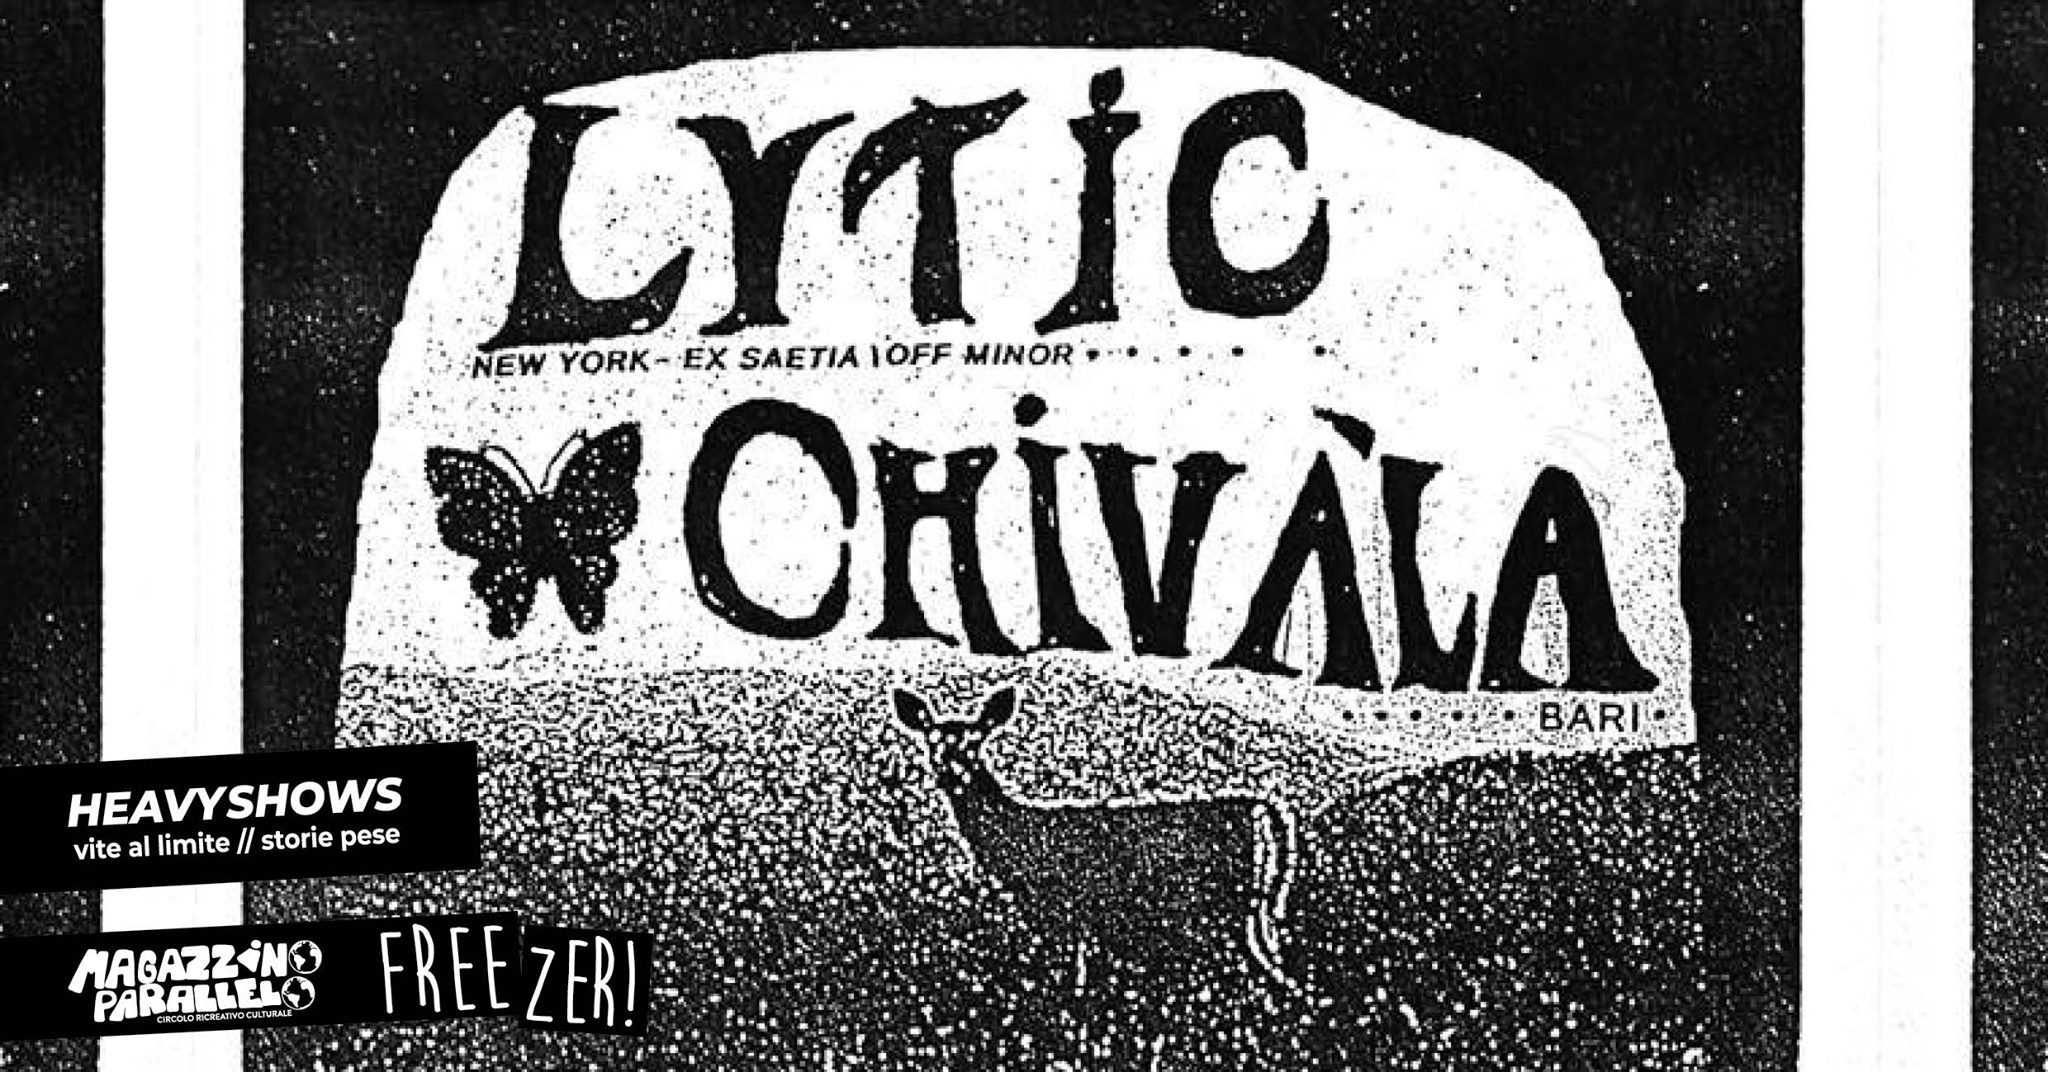 Lytic ⌁ Chivàla / Heavy Shows / at Freezer!